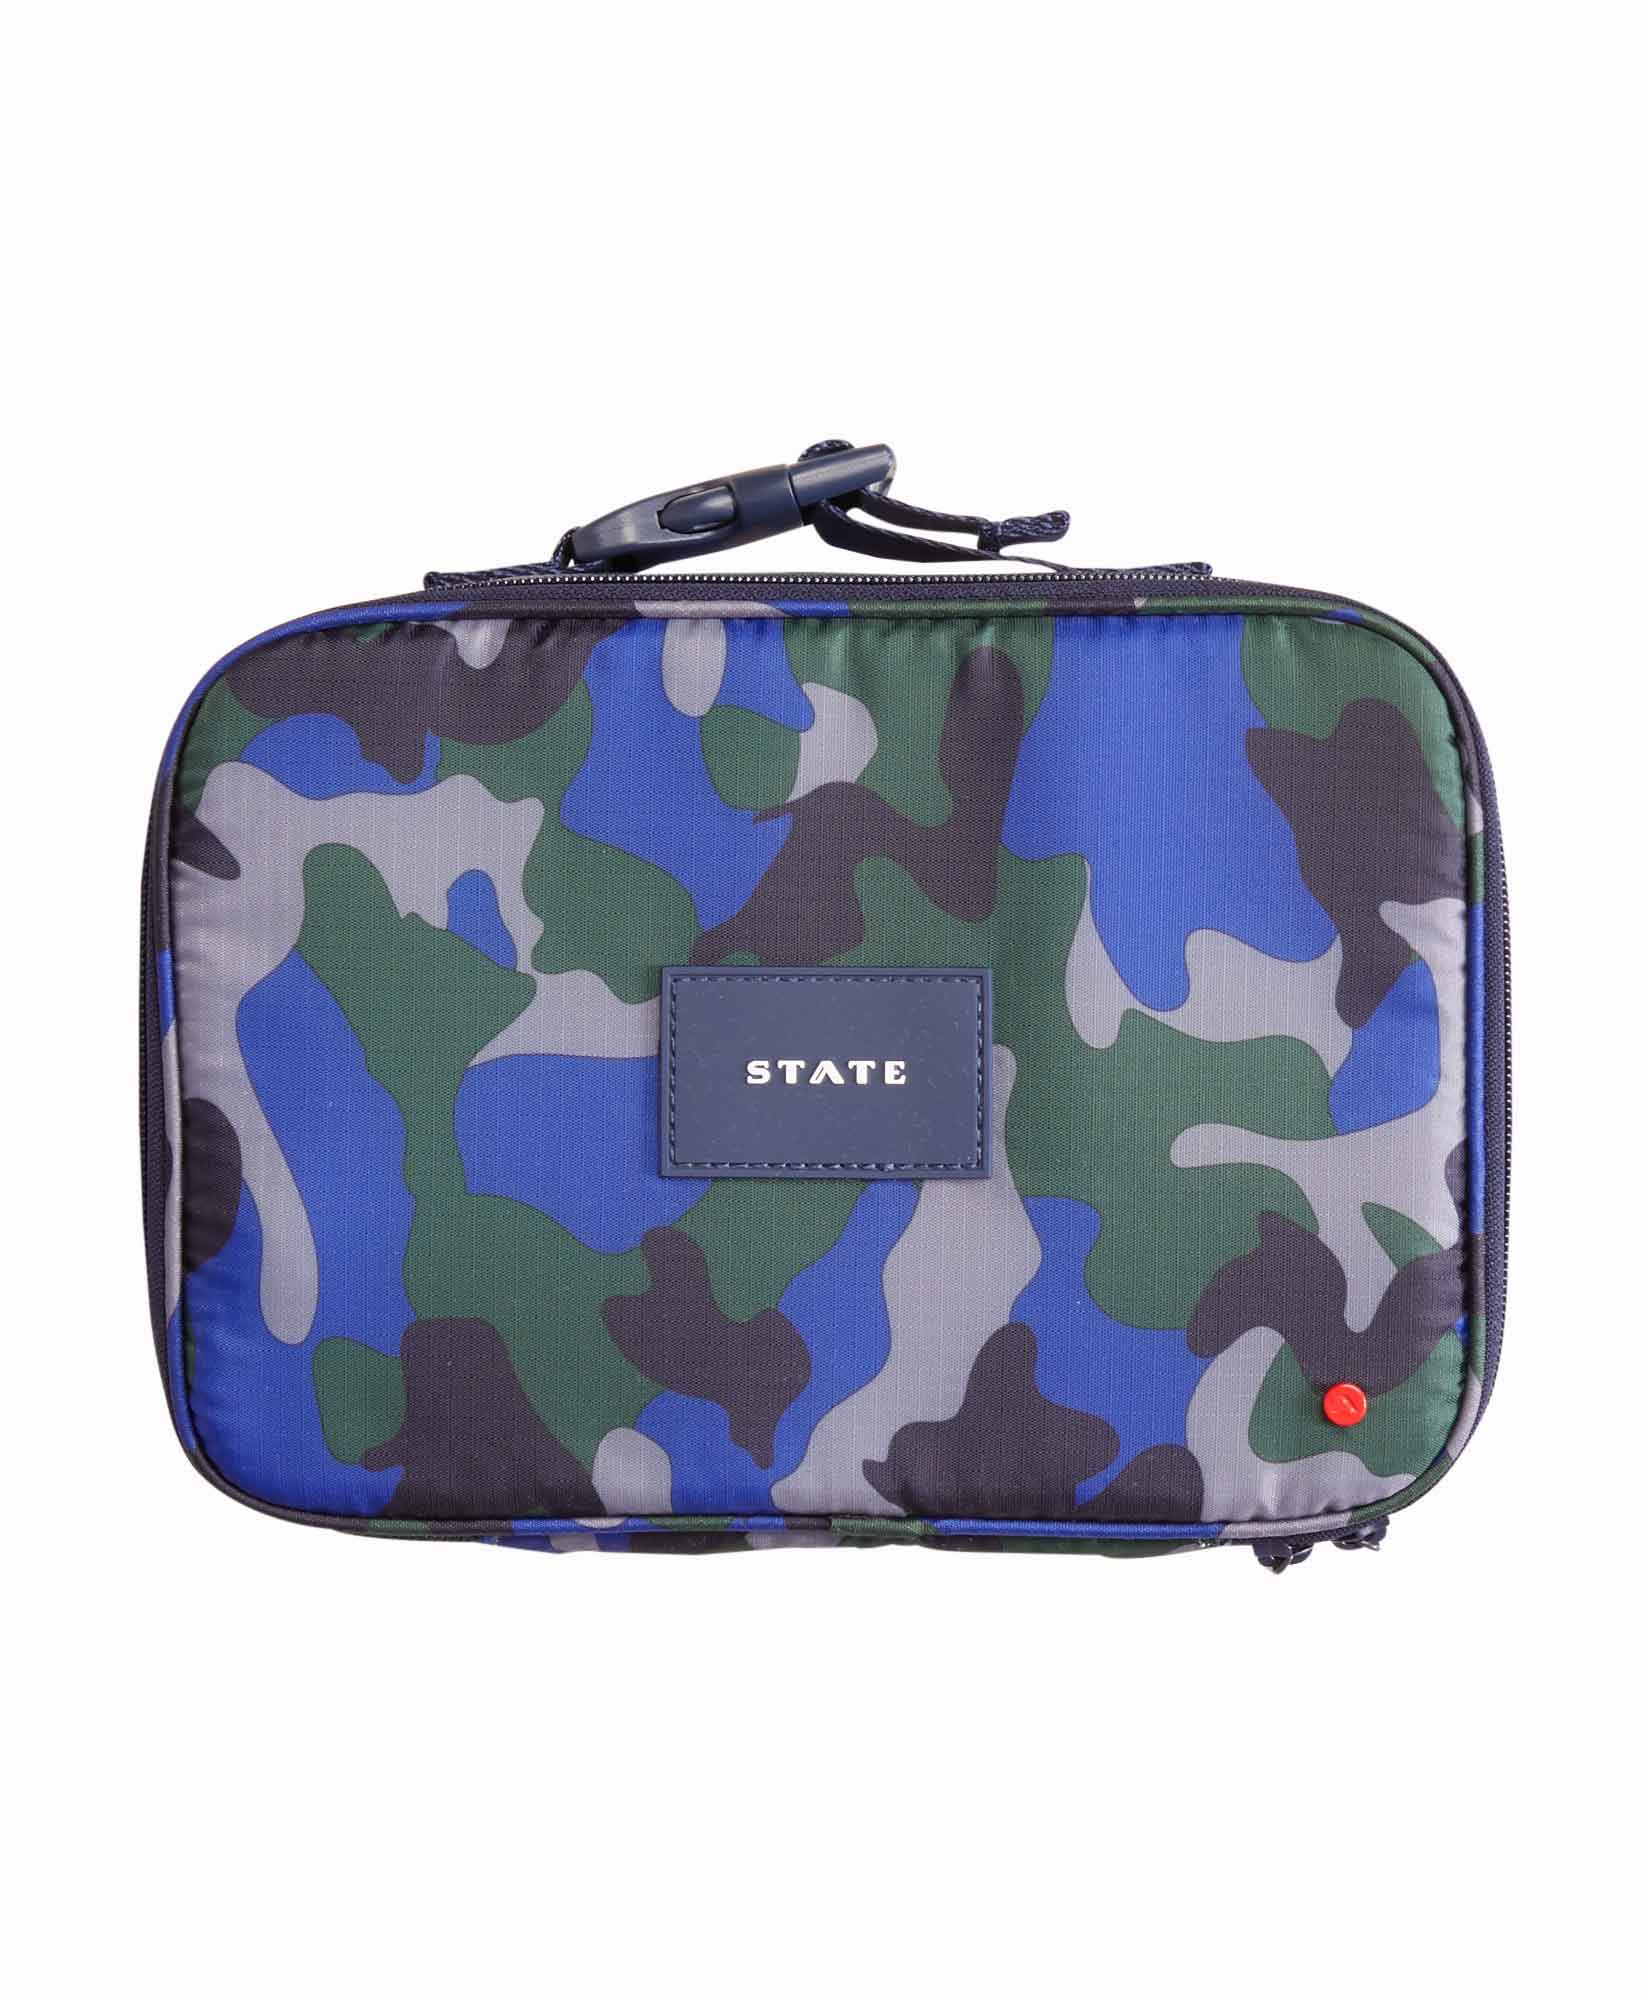 Rodgers Camo Lunch Box